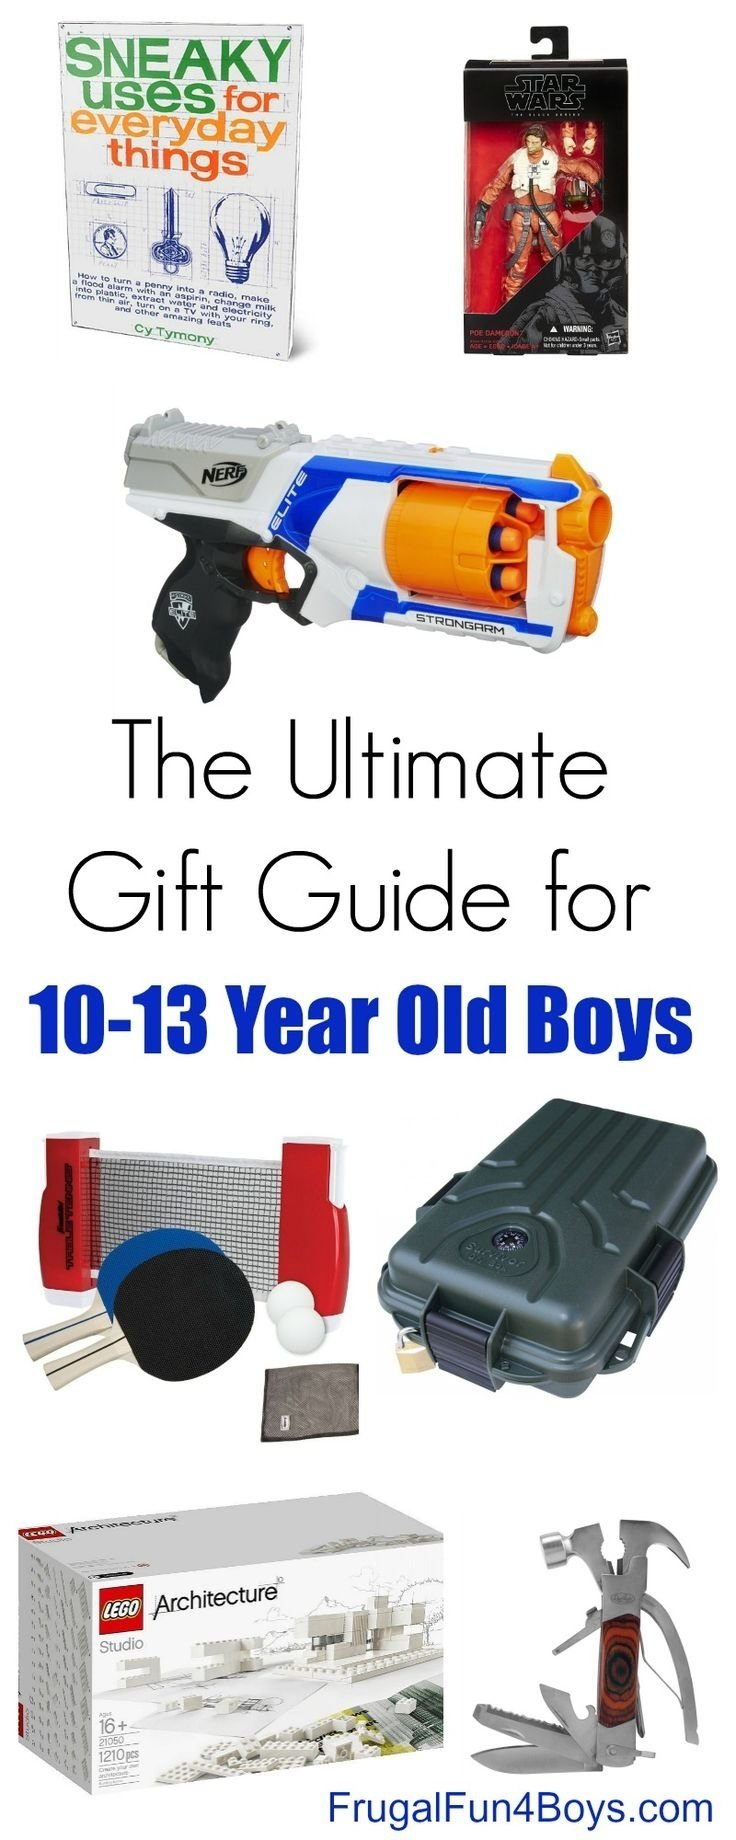 10 Unique Christmas Gift Ideas For 14 Year Old Boys 1312 best frugal fun for boys and girls images on pinterest 2020